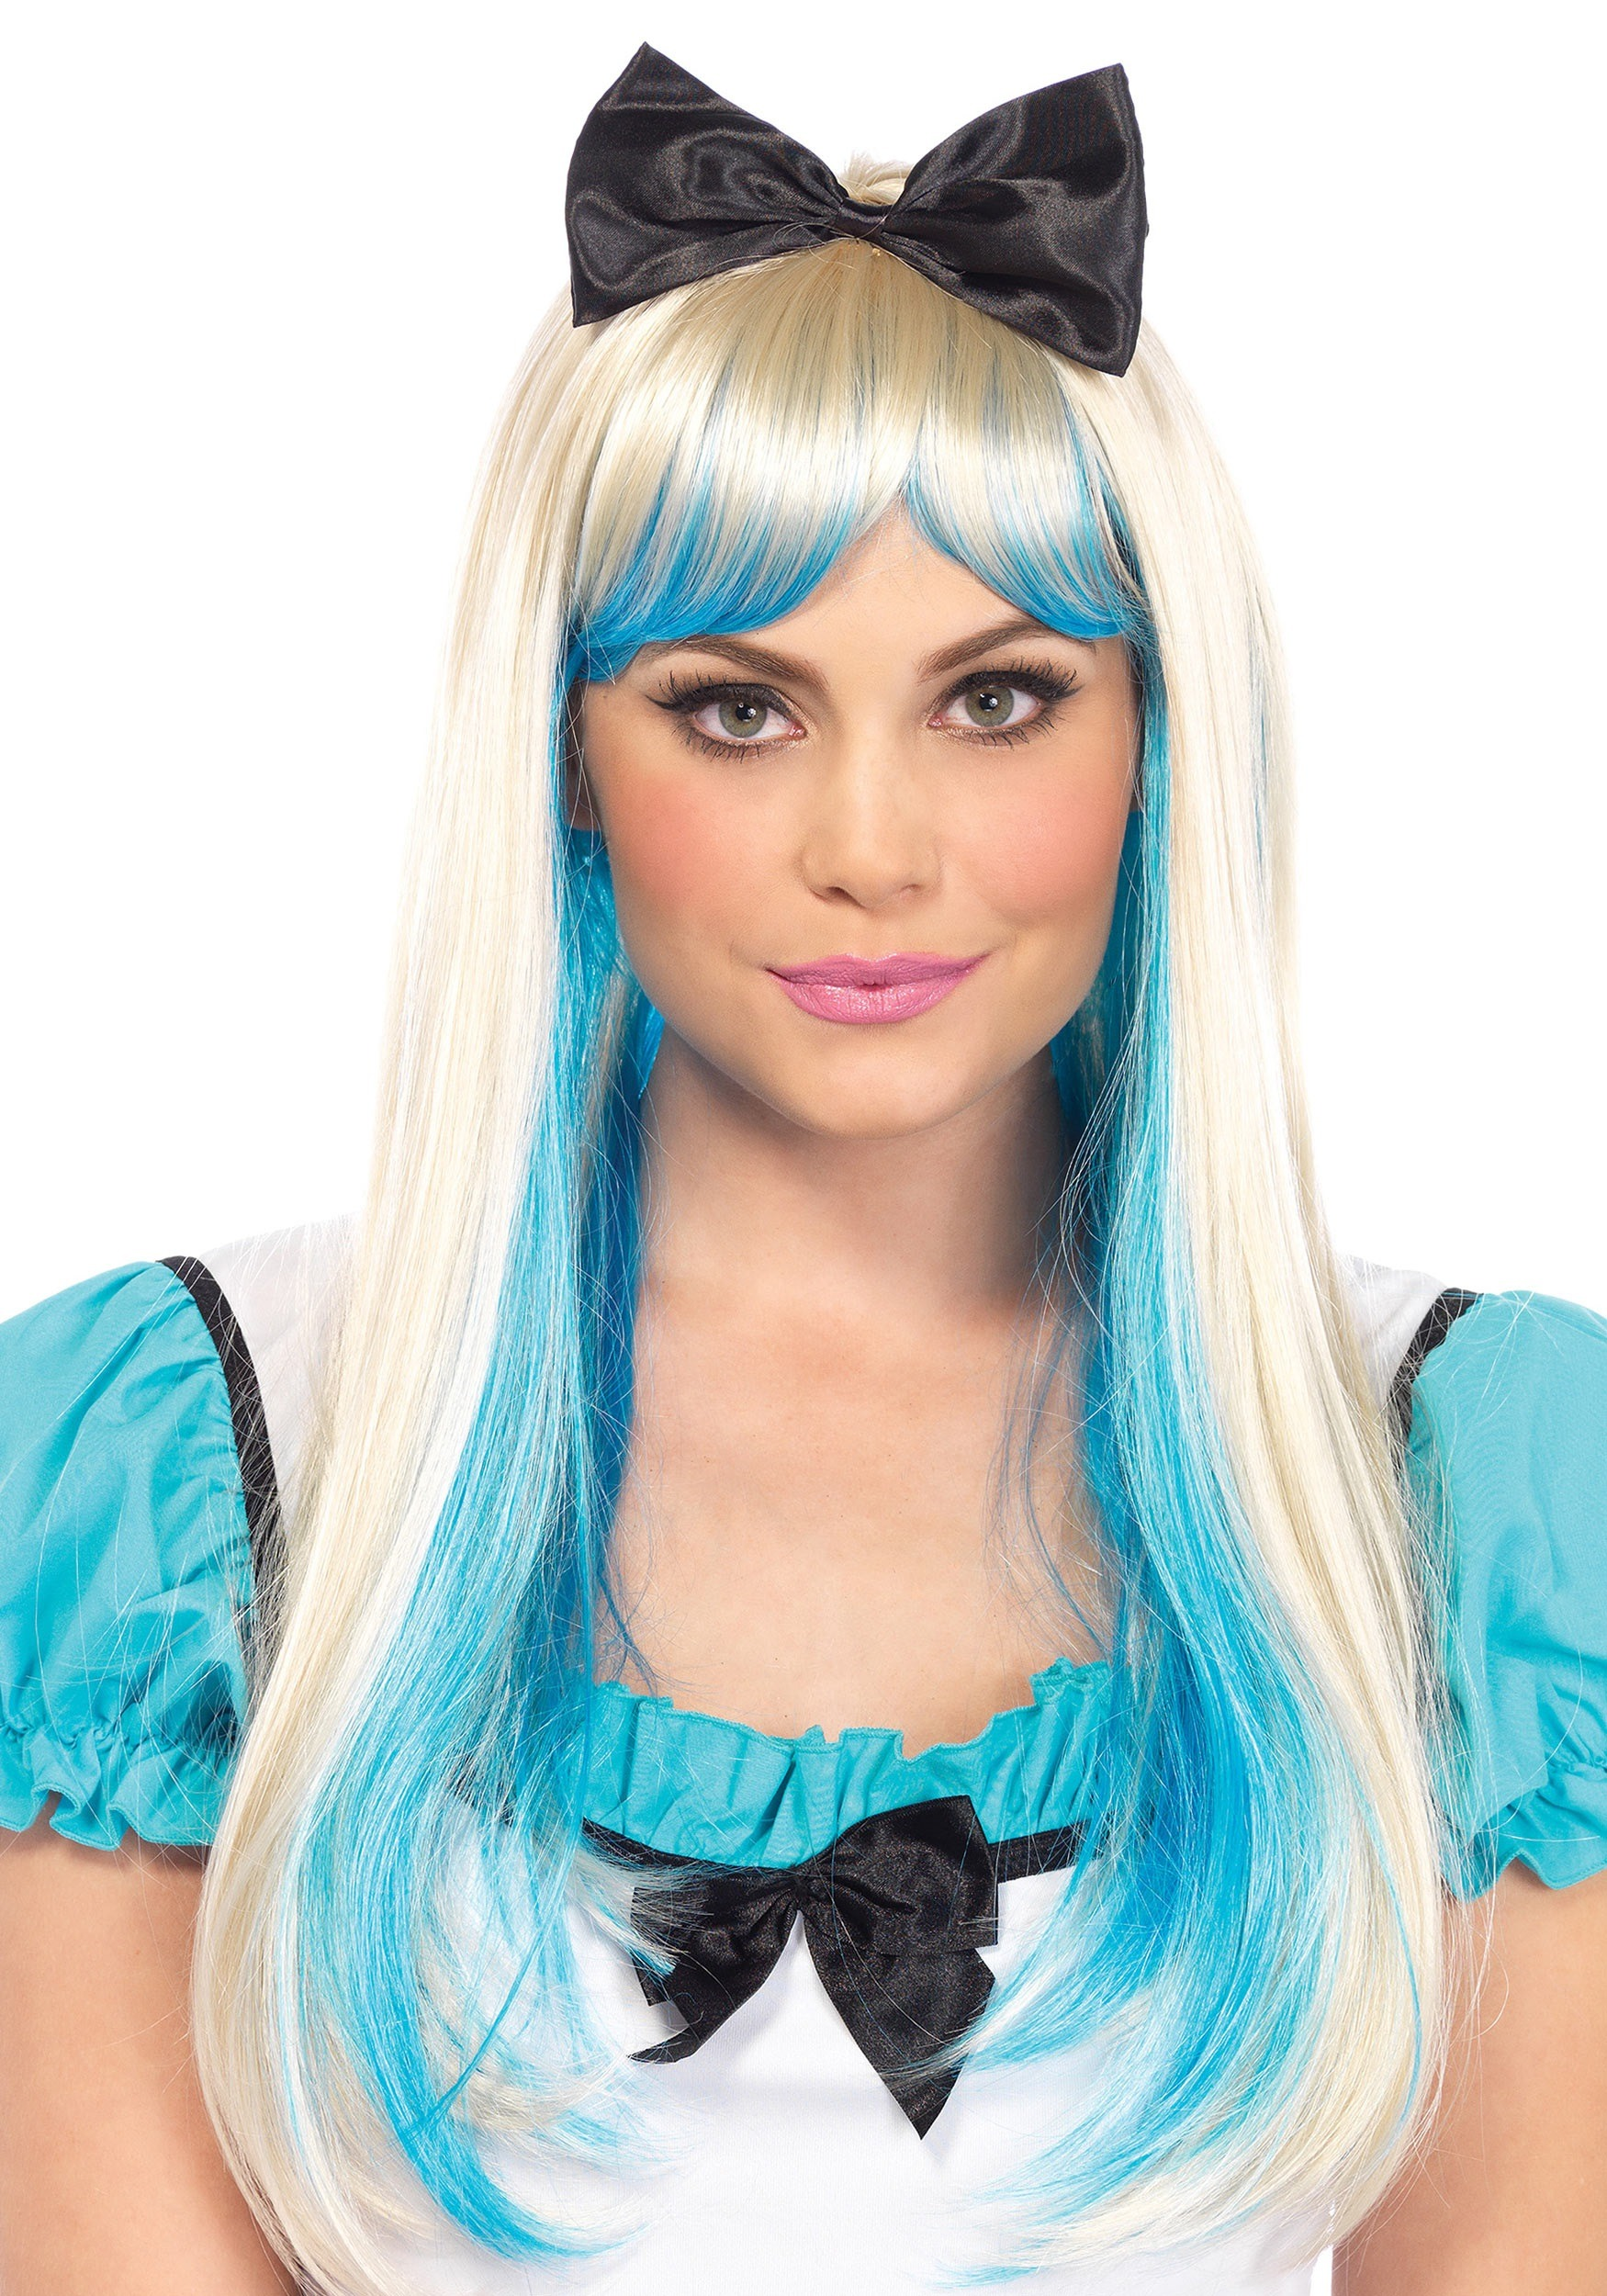 This cool Alice Two Tones Wig in blue and blonde puts a trendy twist on Alice's classic blonde hairstyle. A large black bow is fastened into the long platinum blonde hair.